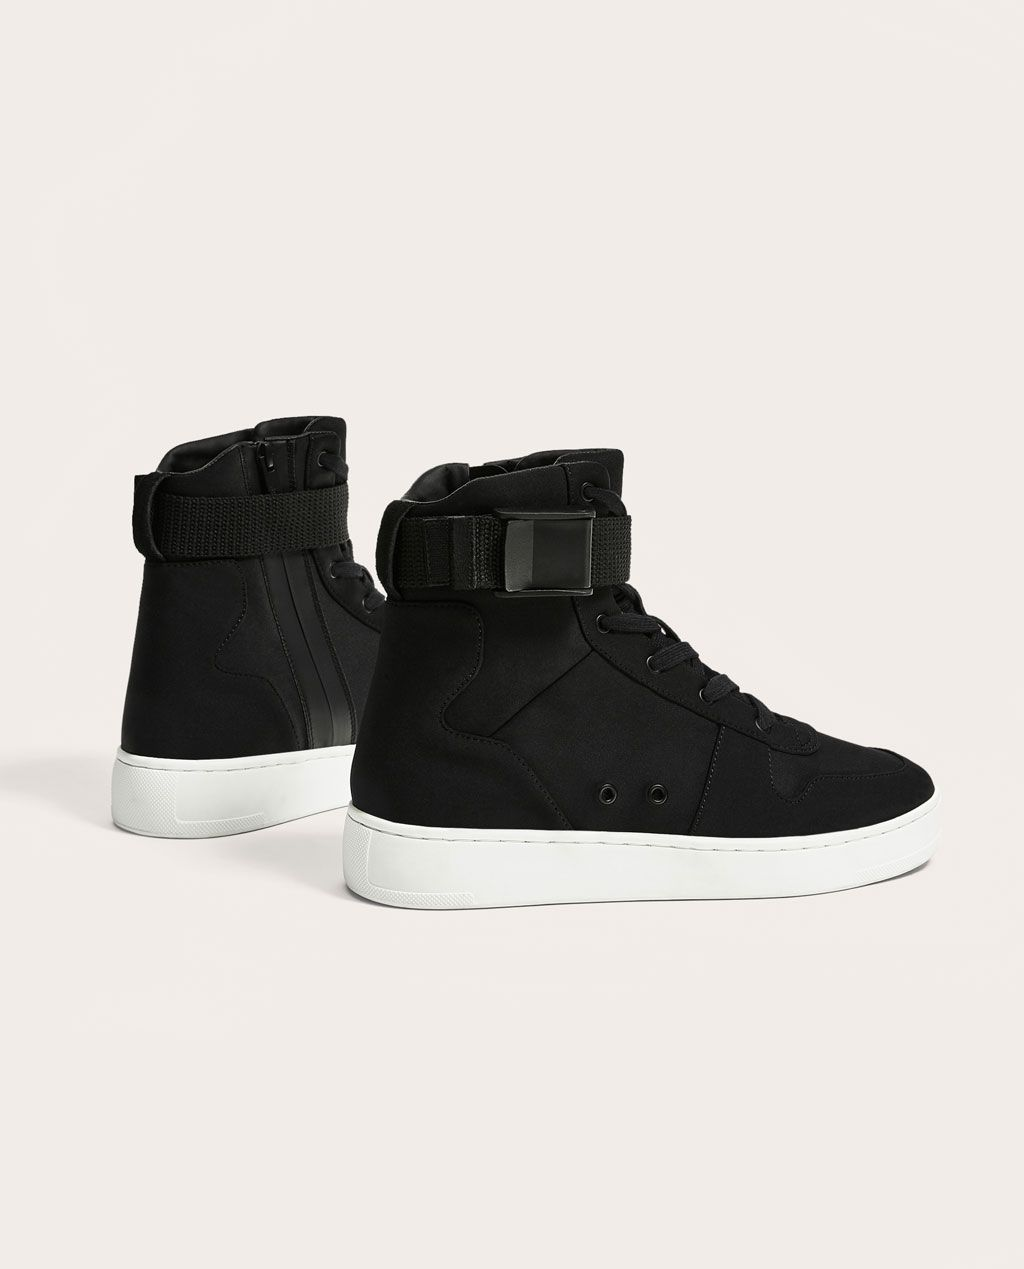 661c3ea46c8 BLACK HIGH TOP SNEAKERS-View all-SHOES-MAN